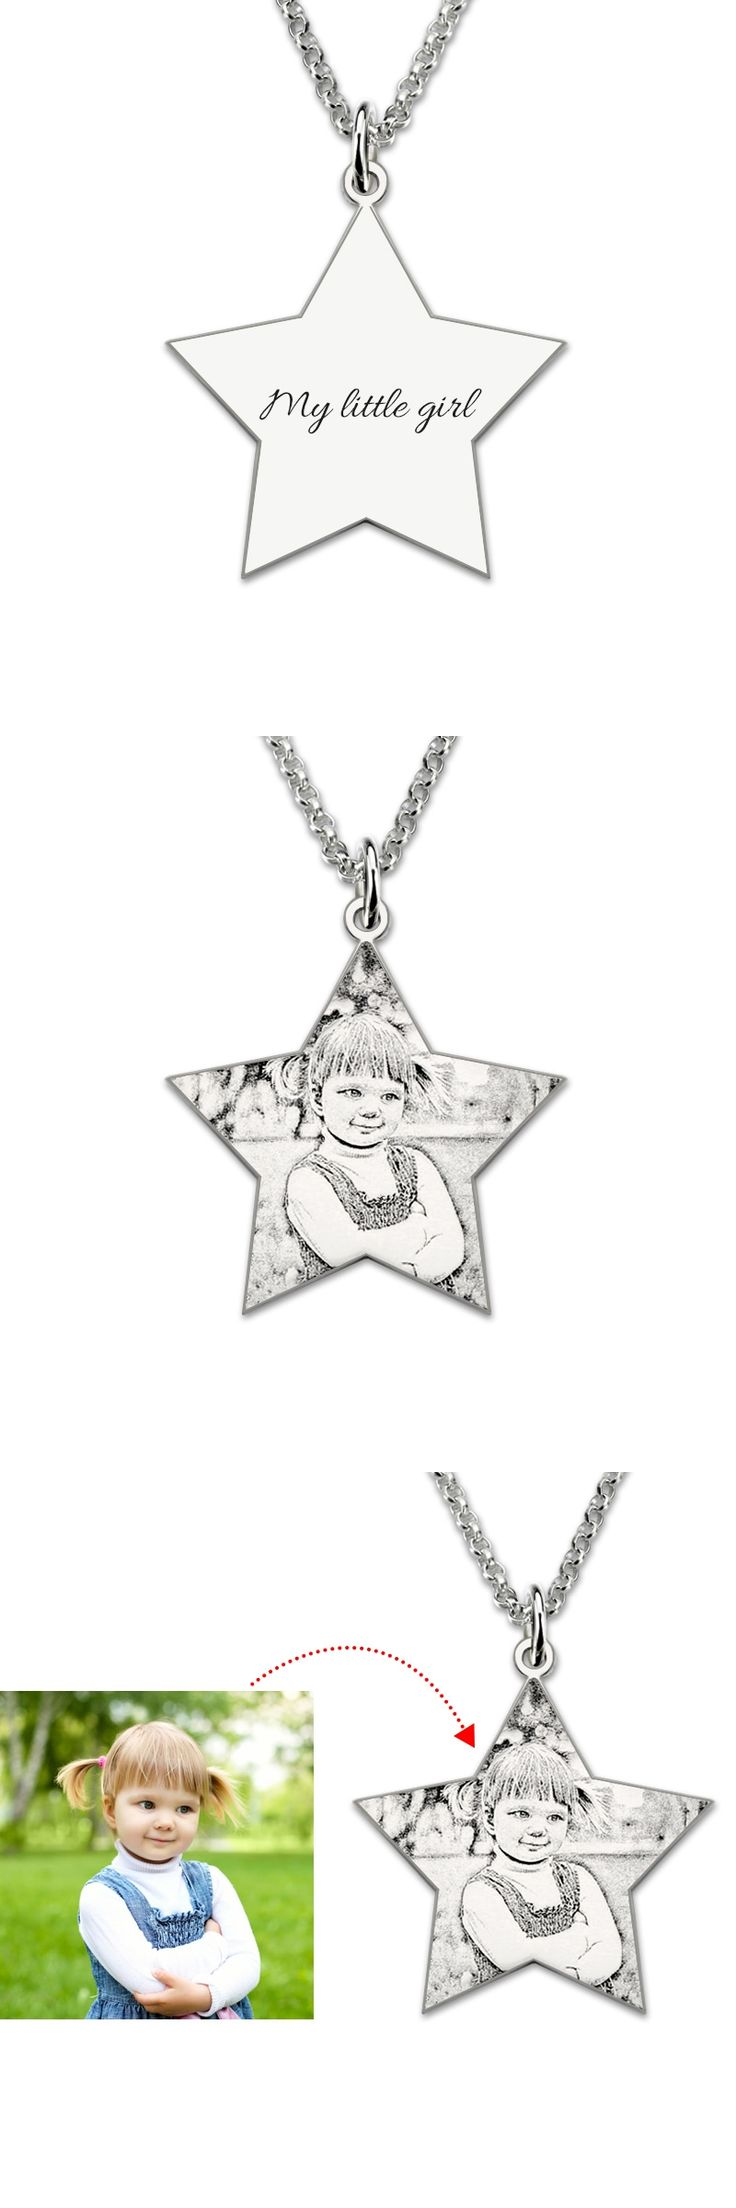 Wholesal Custom Picture Necklace Sterling Silver  Personalized Pentagram Photo Engraved Necklace Memorial Jewelry Gift